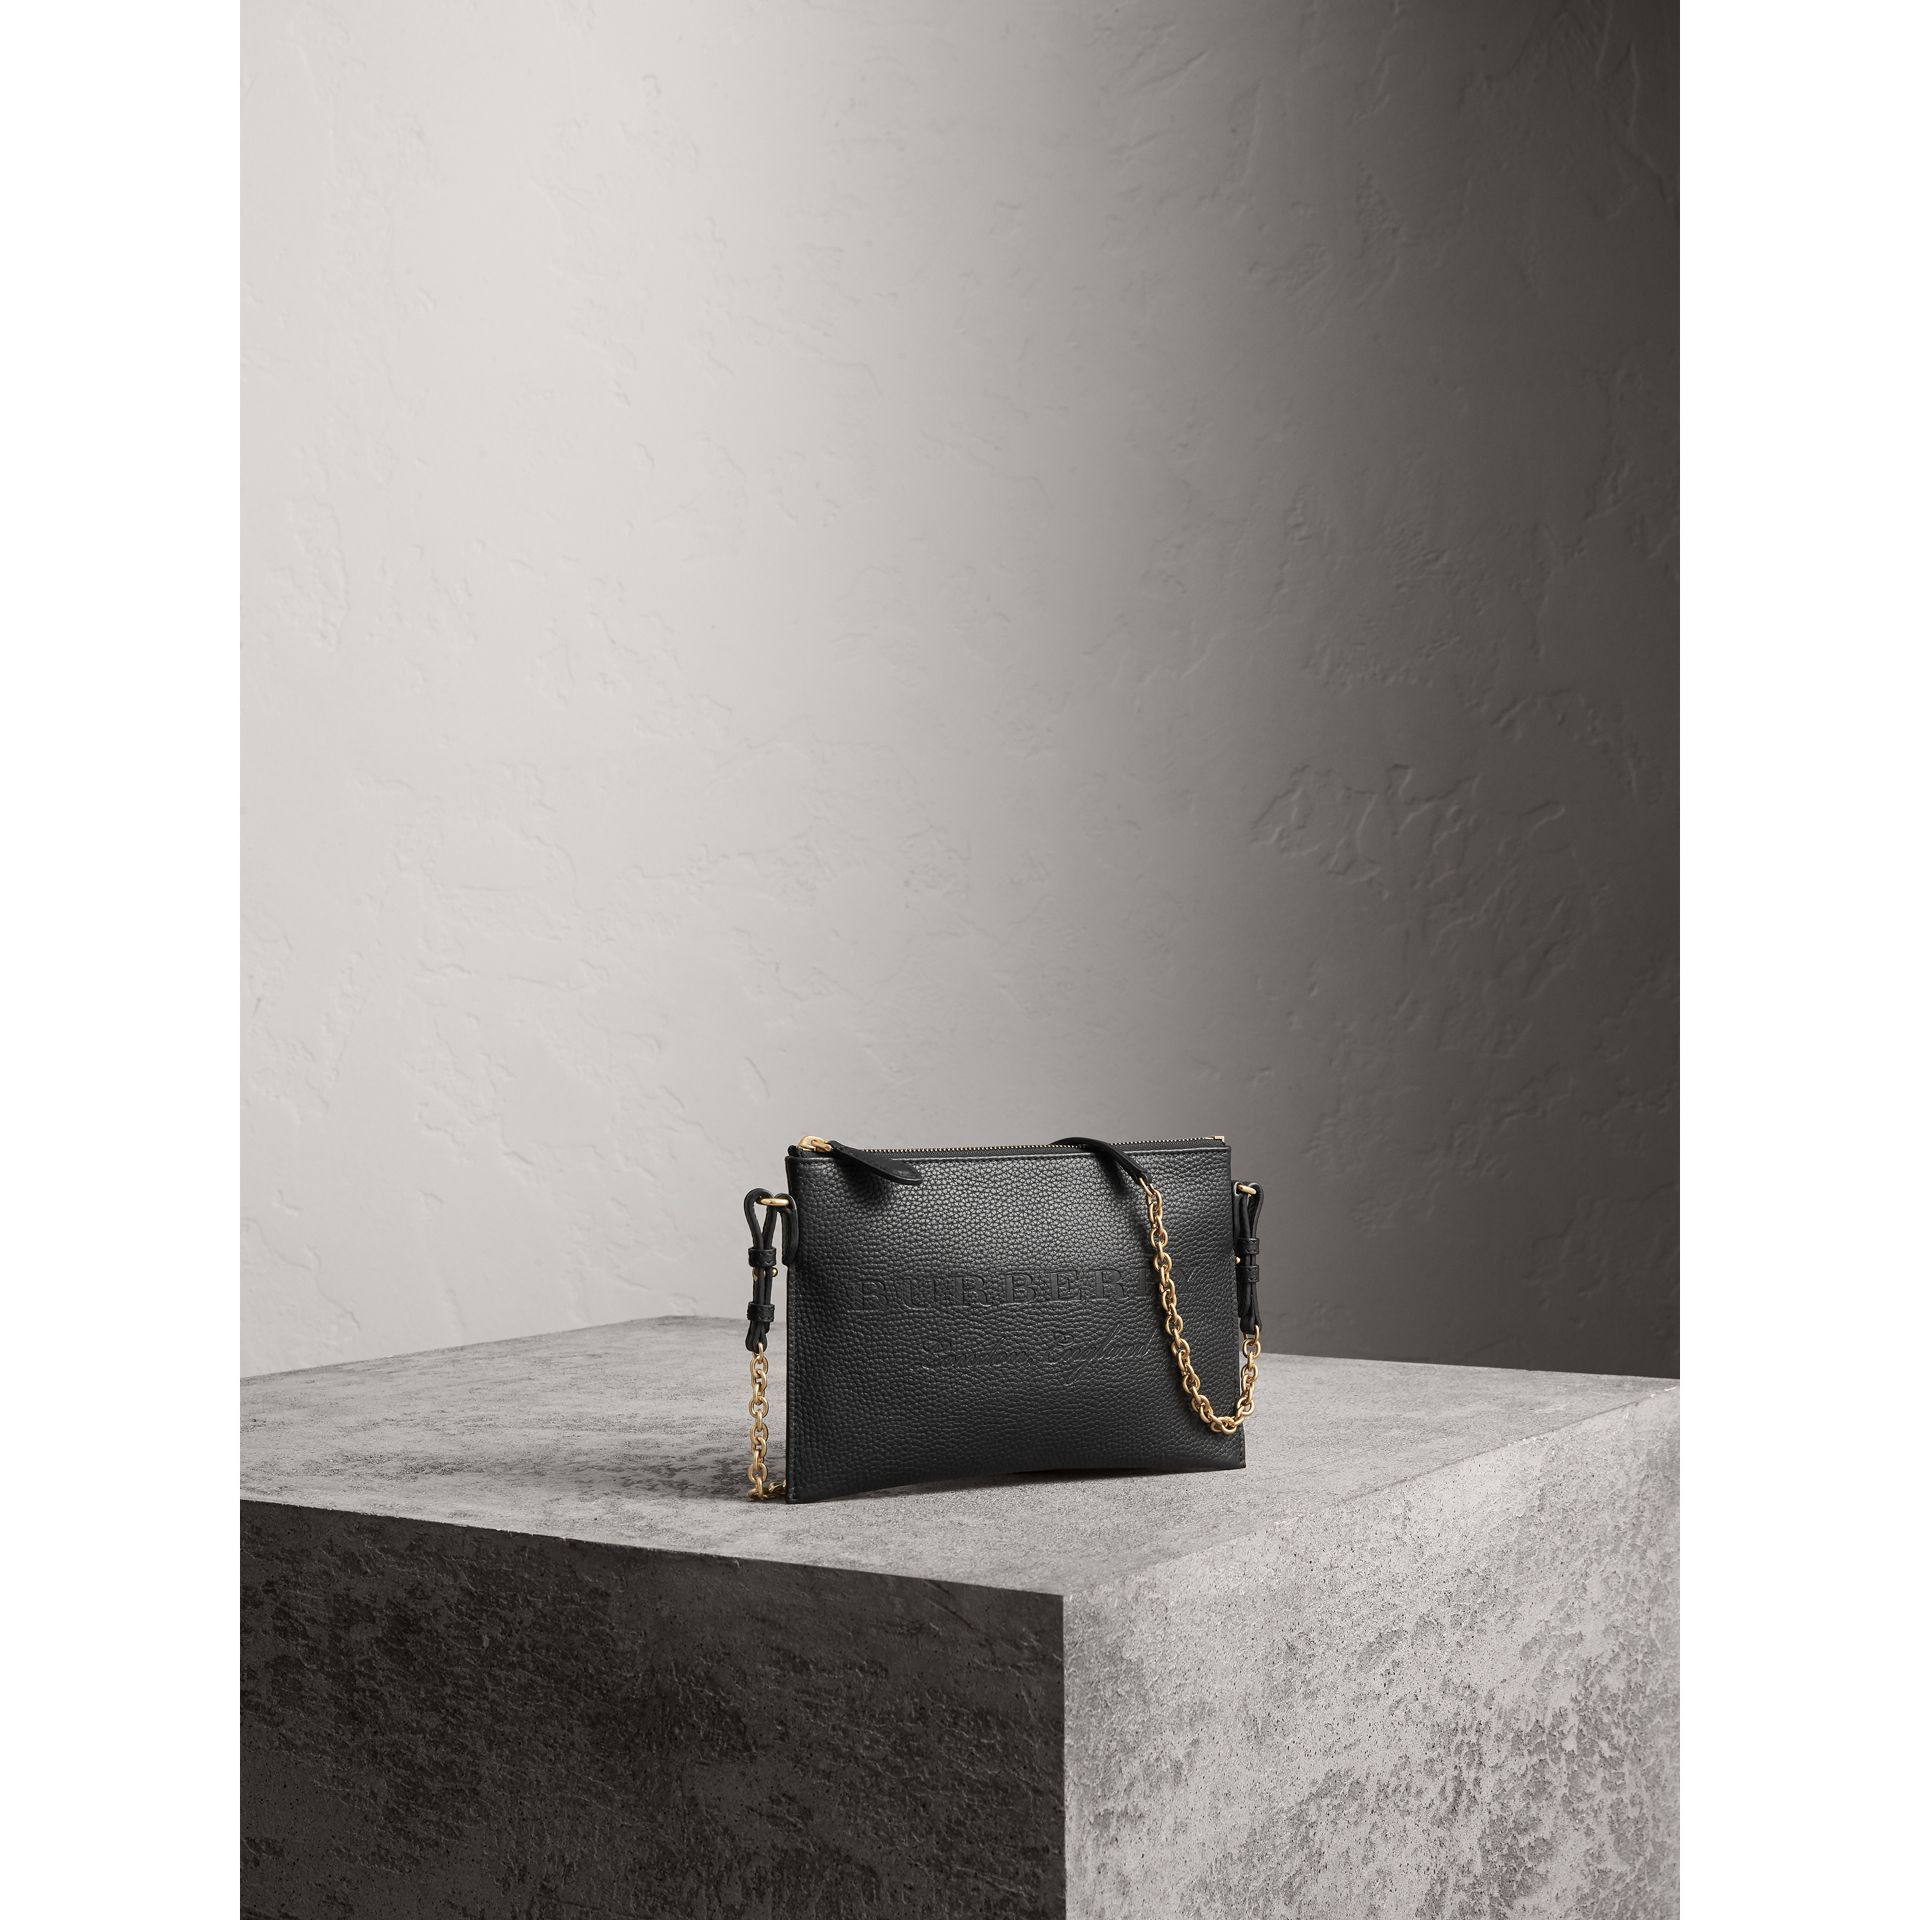 Embossed Leather Clutch Bag in Black - Women | Burberry United Kingdom - gallery image 6